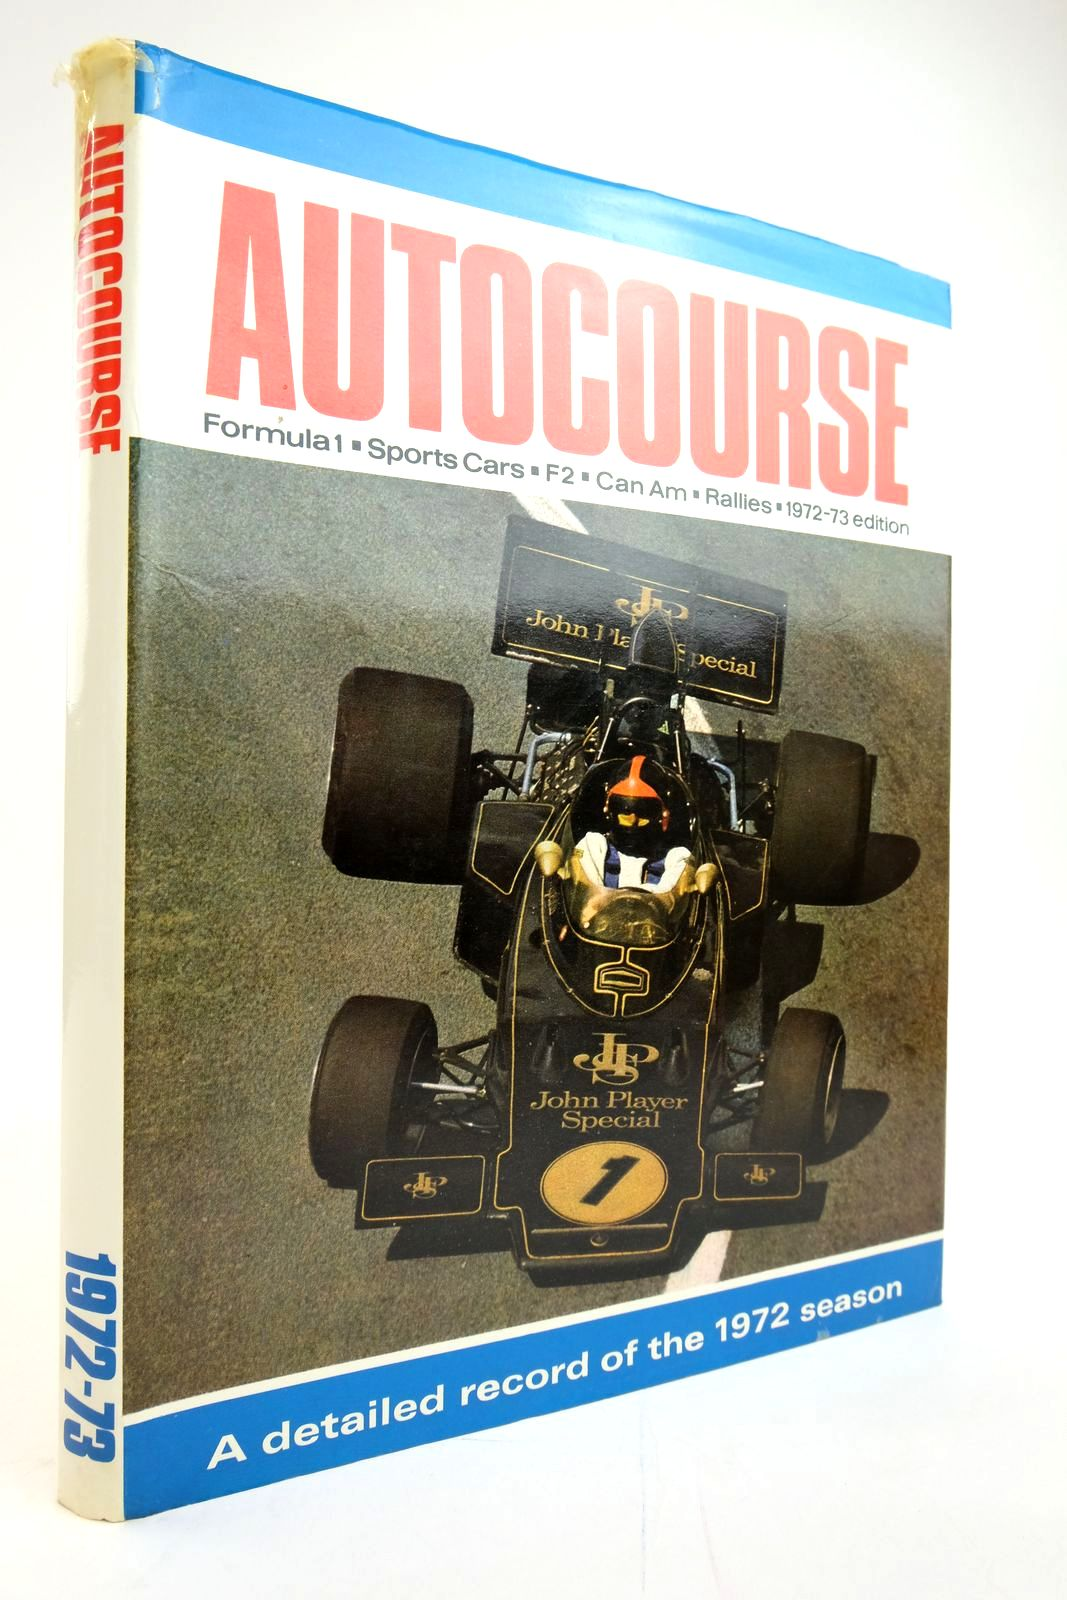 Photo of AUTOCOURSE 1972-73 written by Kettlewell, Mike published by Haymarket Publishing Limited (STOCK CODE: 2135301)  for sale by Stella & Rose's Books